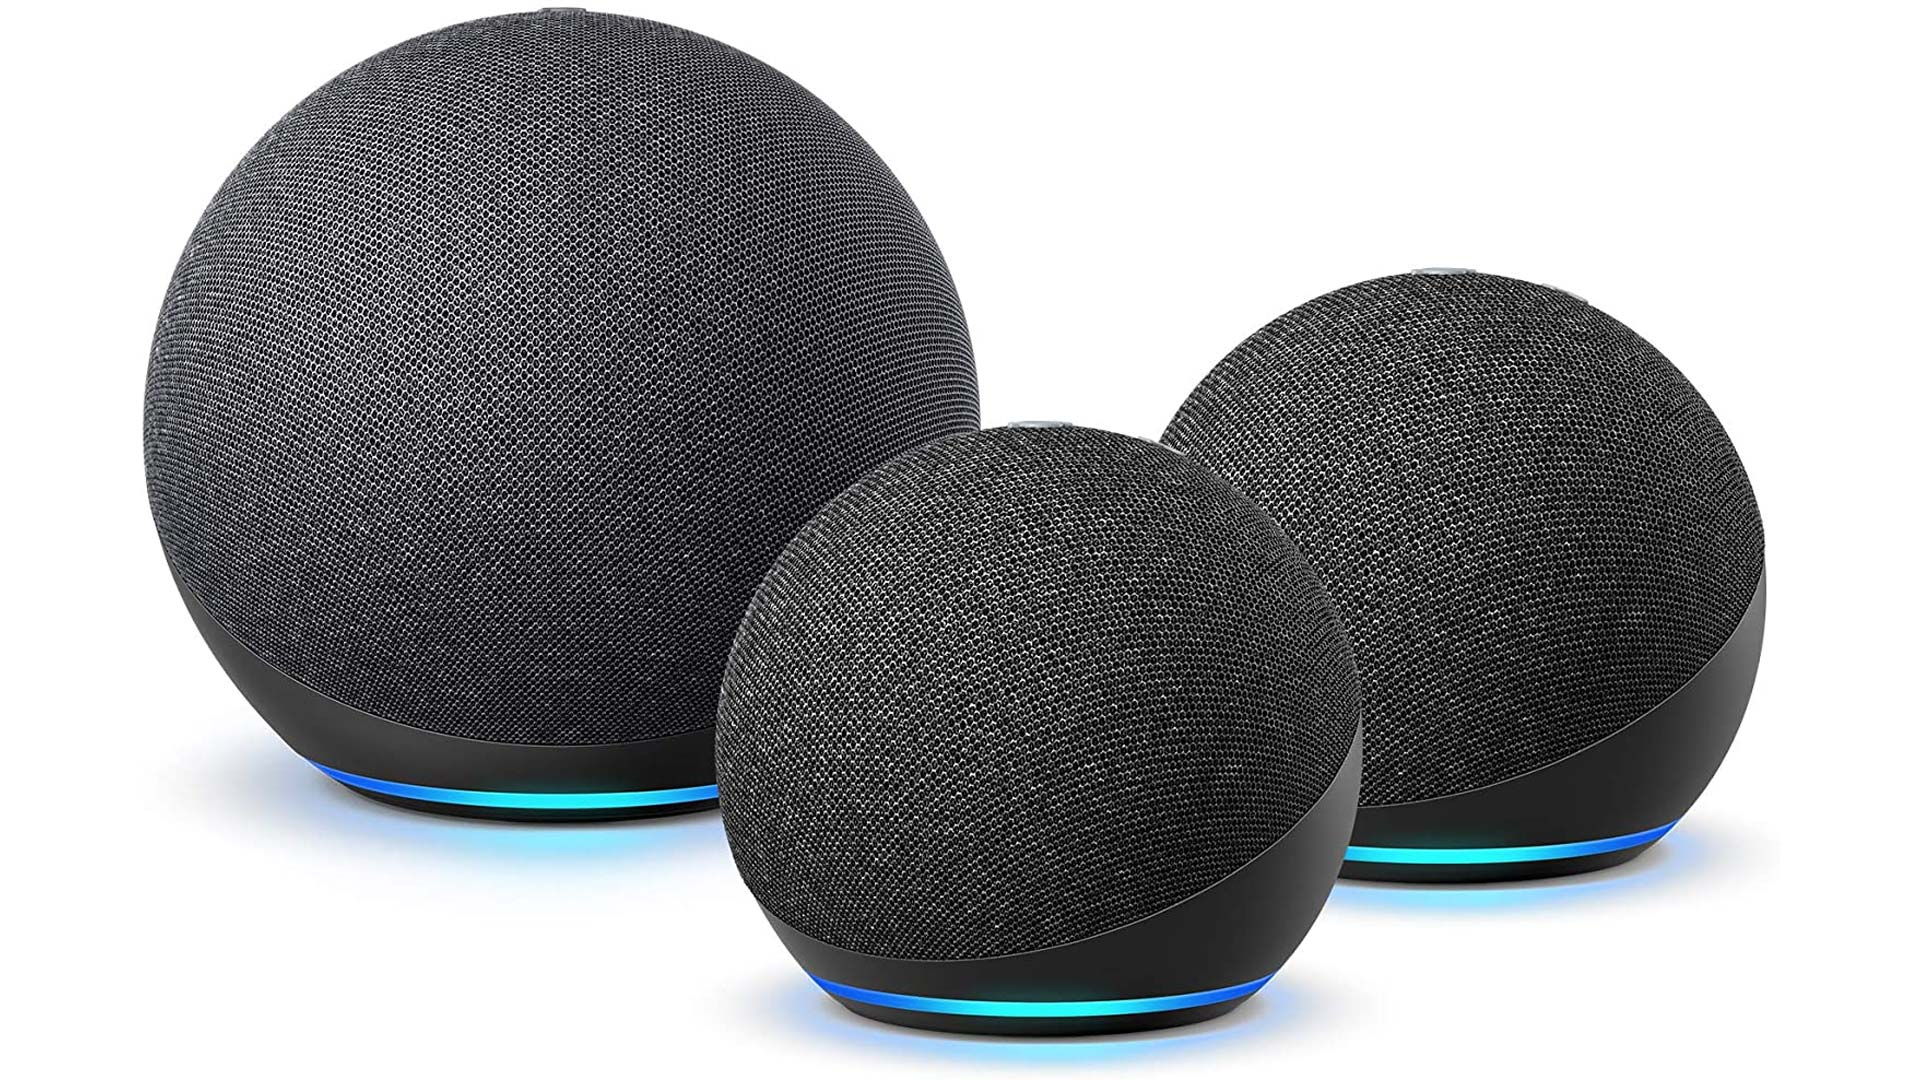 Amazon Echo pair on sale for $119.98 and Echo Dot pair on sale for $49.98 — New Lowest Price Ever